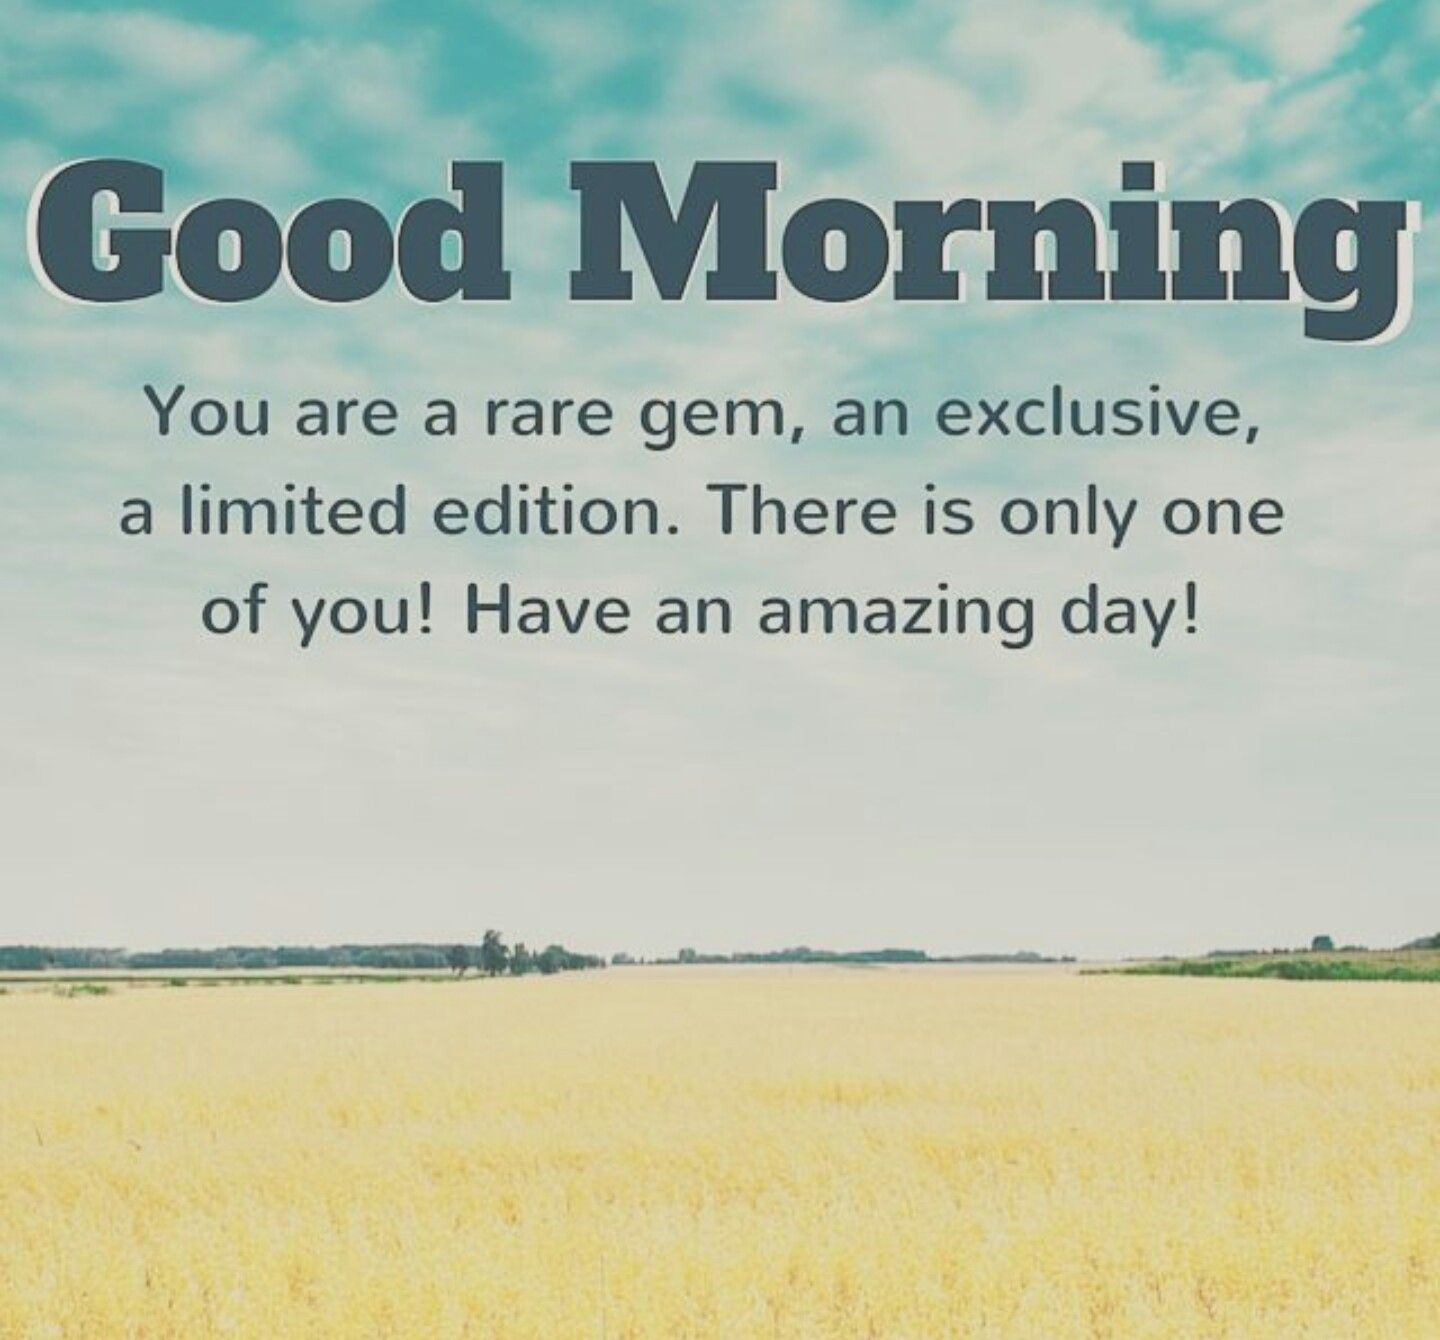 Ood Morning Cute Motivational Quotes: Good Morning Sunshine